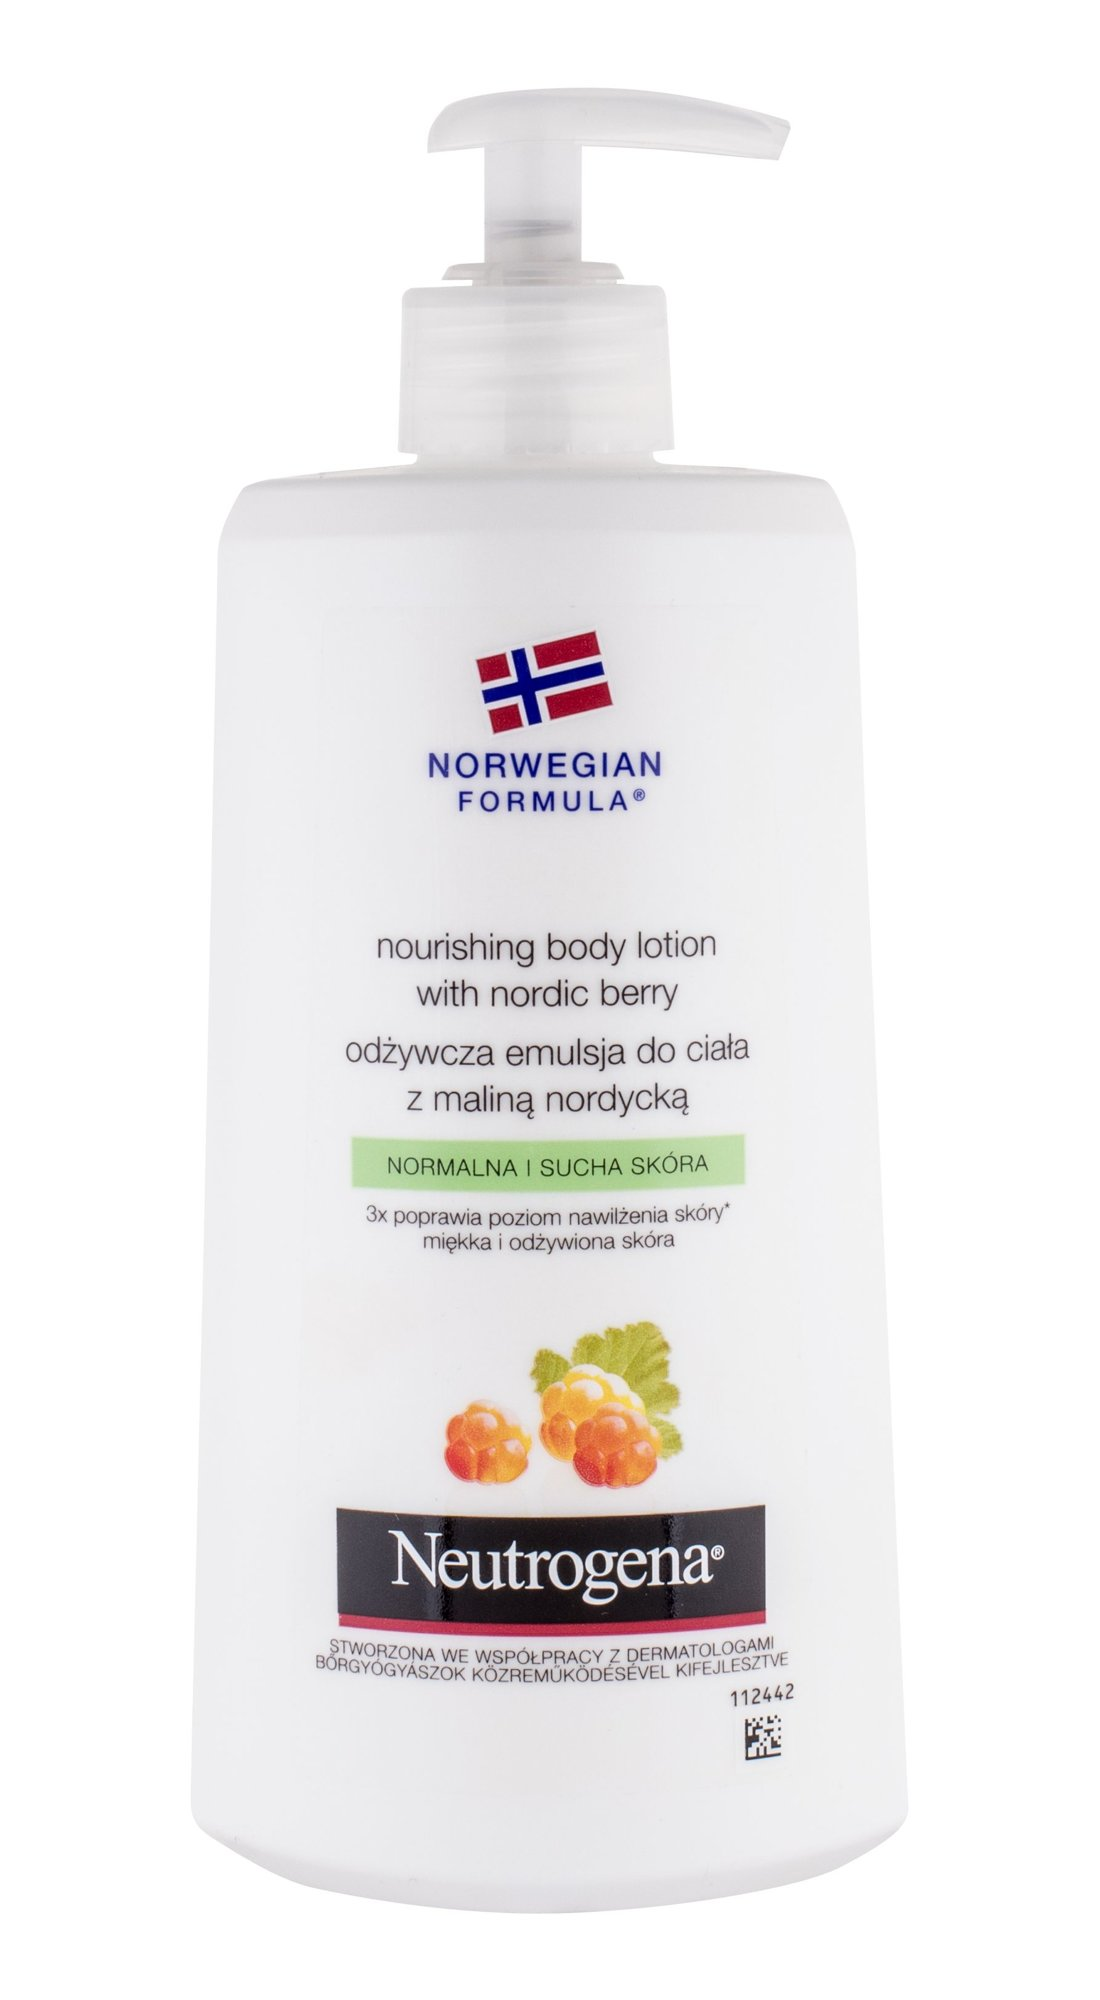 Neutrogena Nourishing Body Lotion With Nordic Berry Cosmetic 400ml